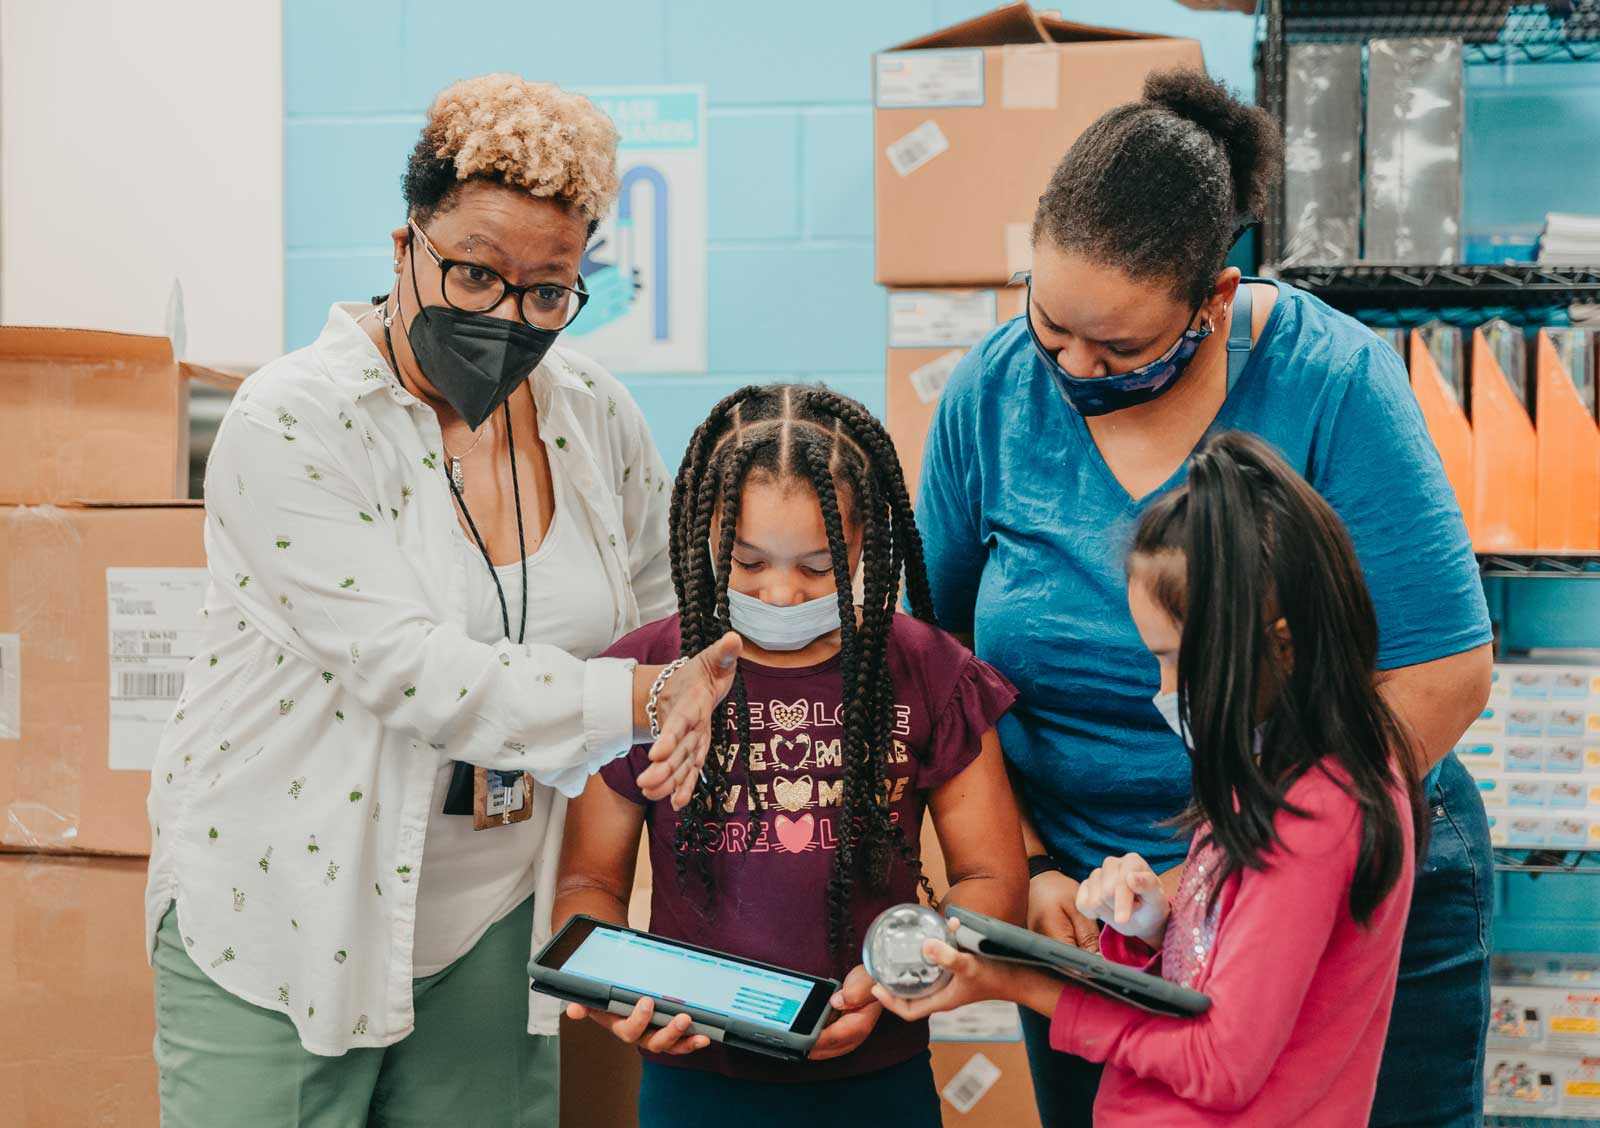 Claremont teacher working with students